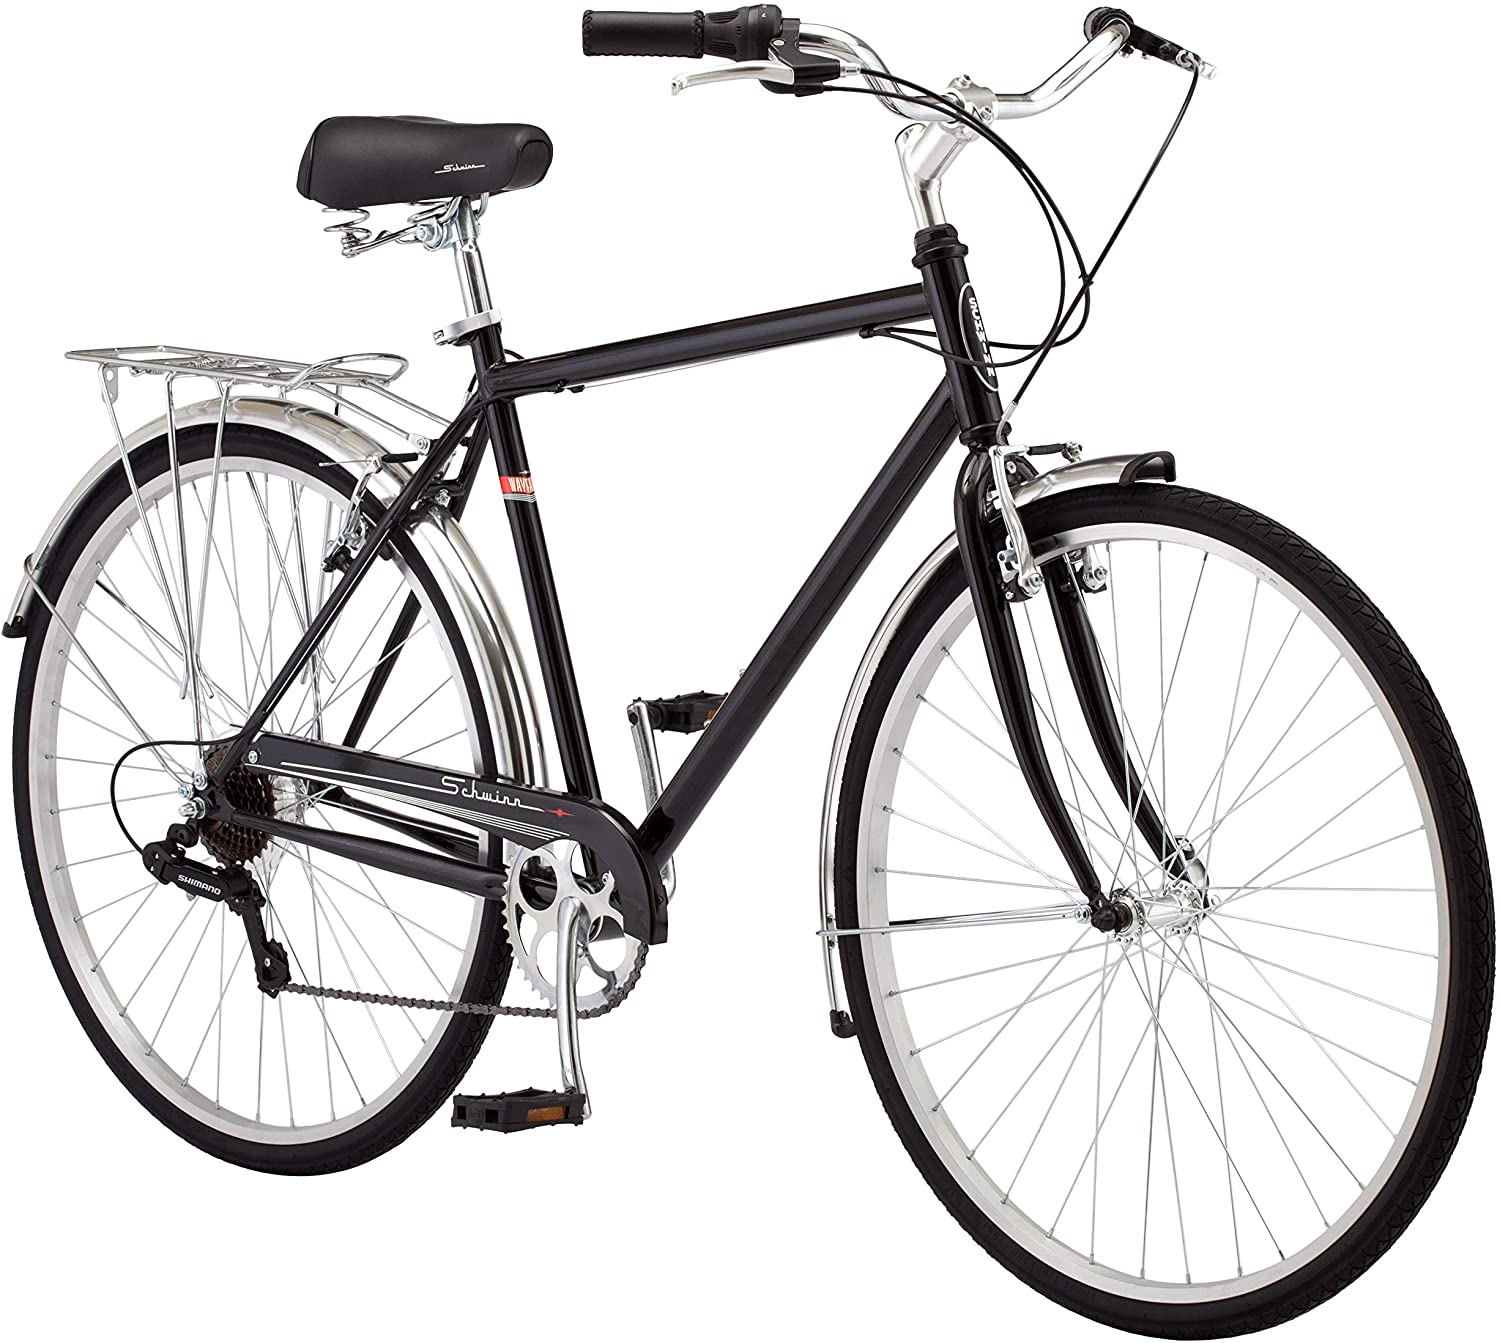 Review of Schwinn Wayfarer Bike Mens and Womens Hybrid Retro-Styled Cruiser